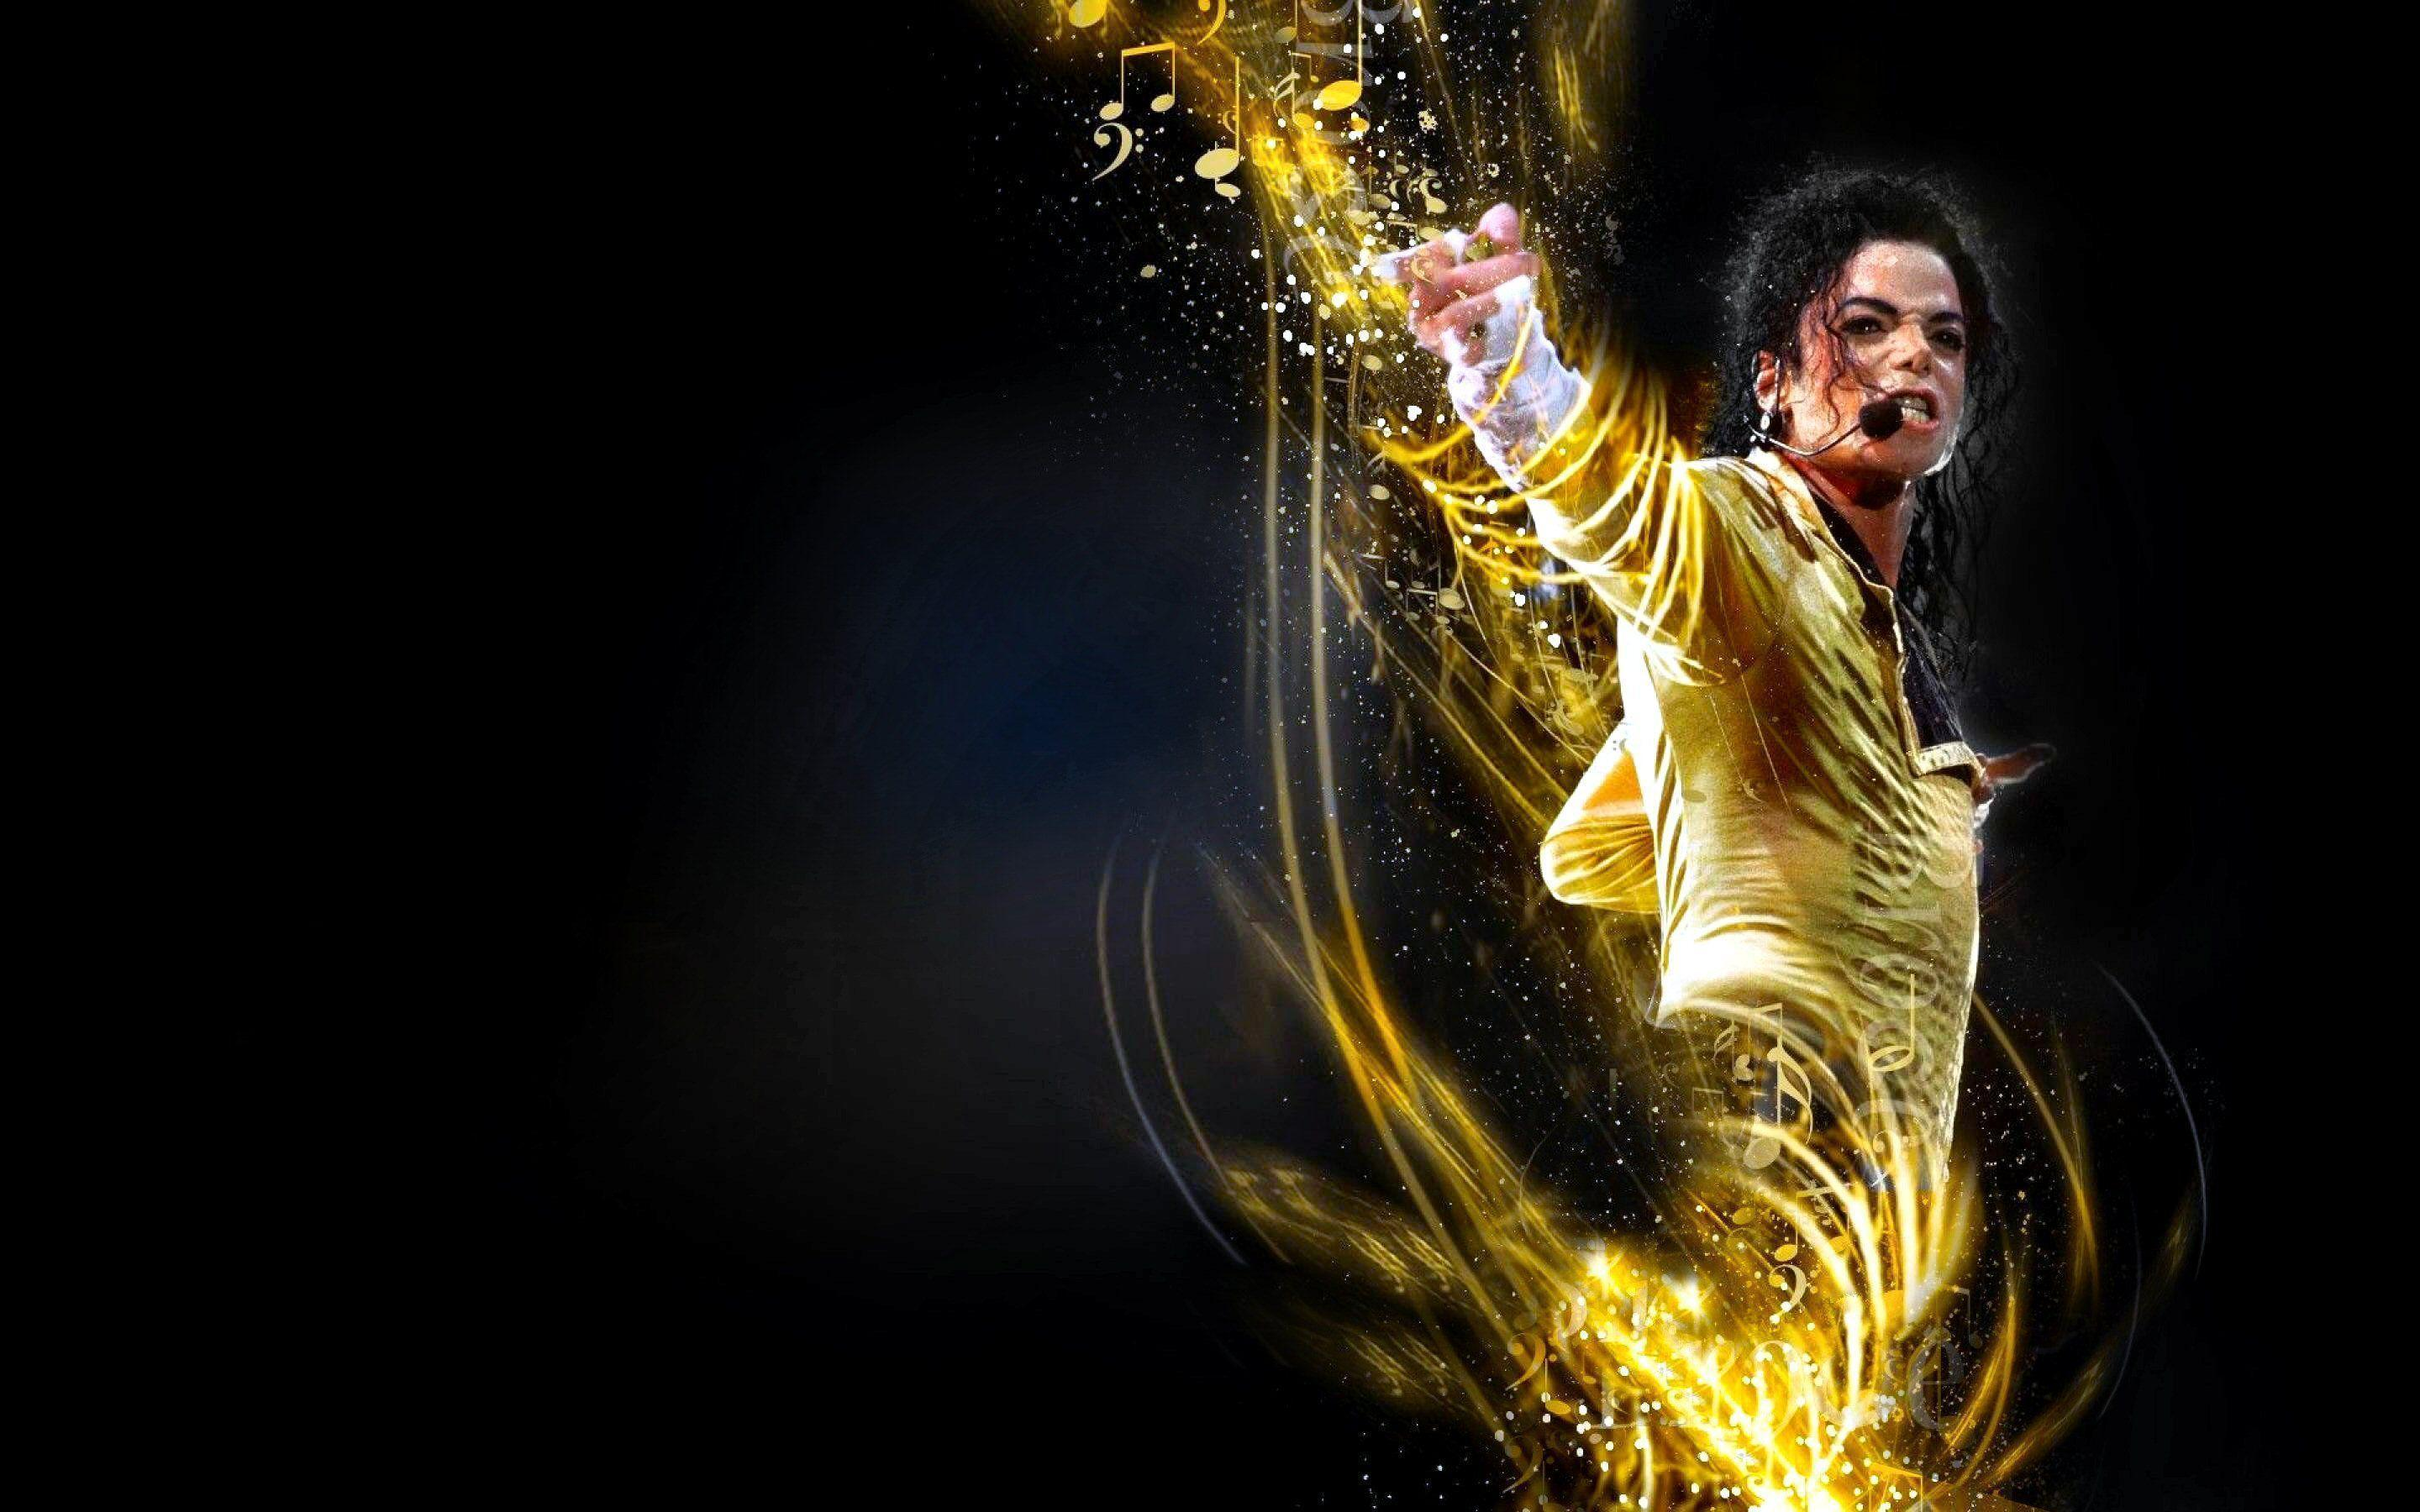 Michael Jackson Wallpaper - Full HD wallpaper search